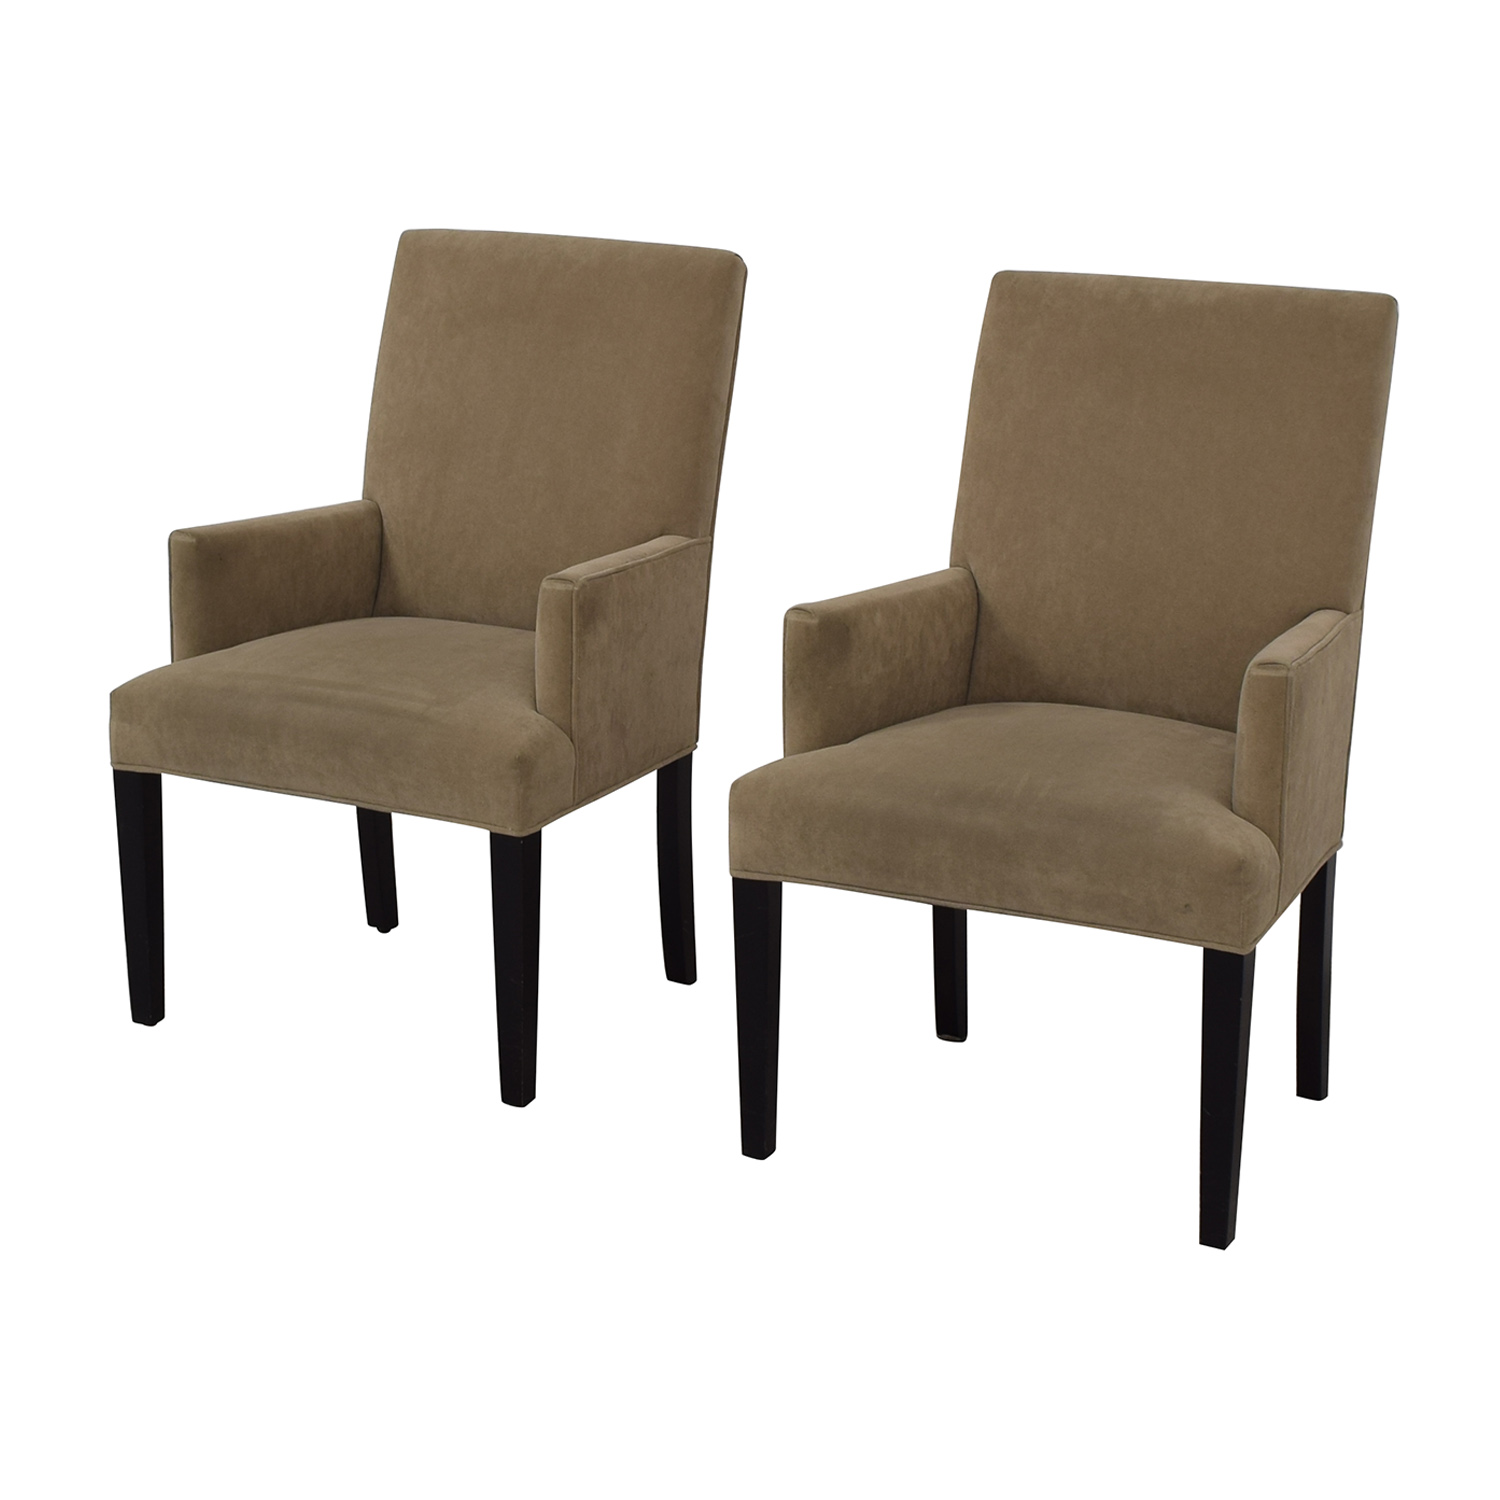 buy Crate & Barrel Crate & Barrel Dining Chairs online